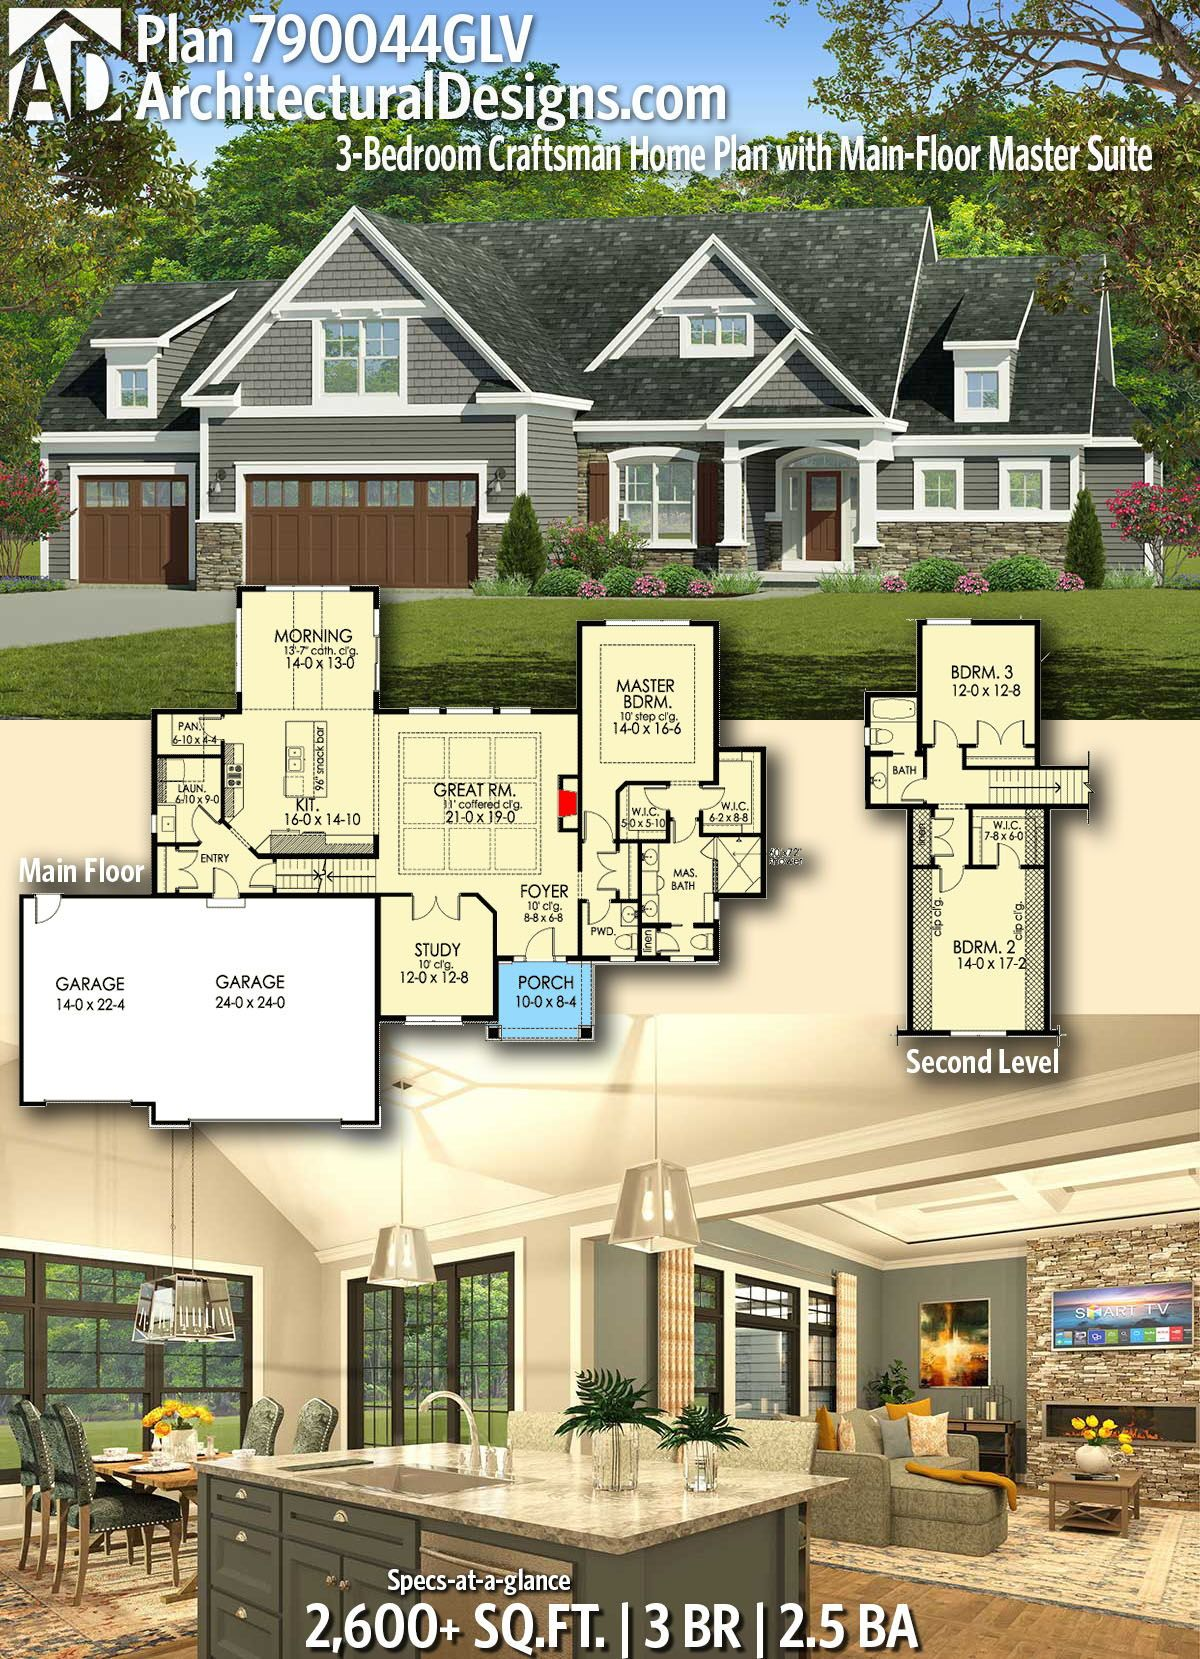 Architectural Designs Home Plan 790044GLV gives you